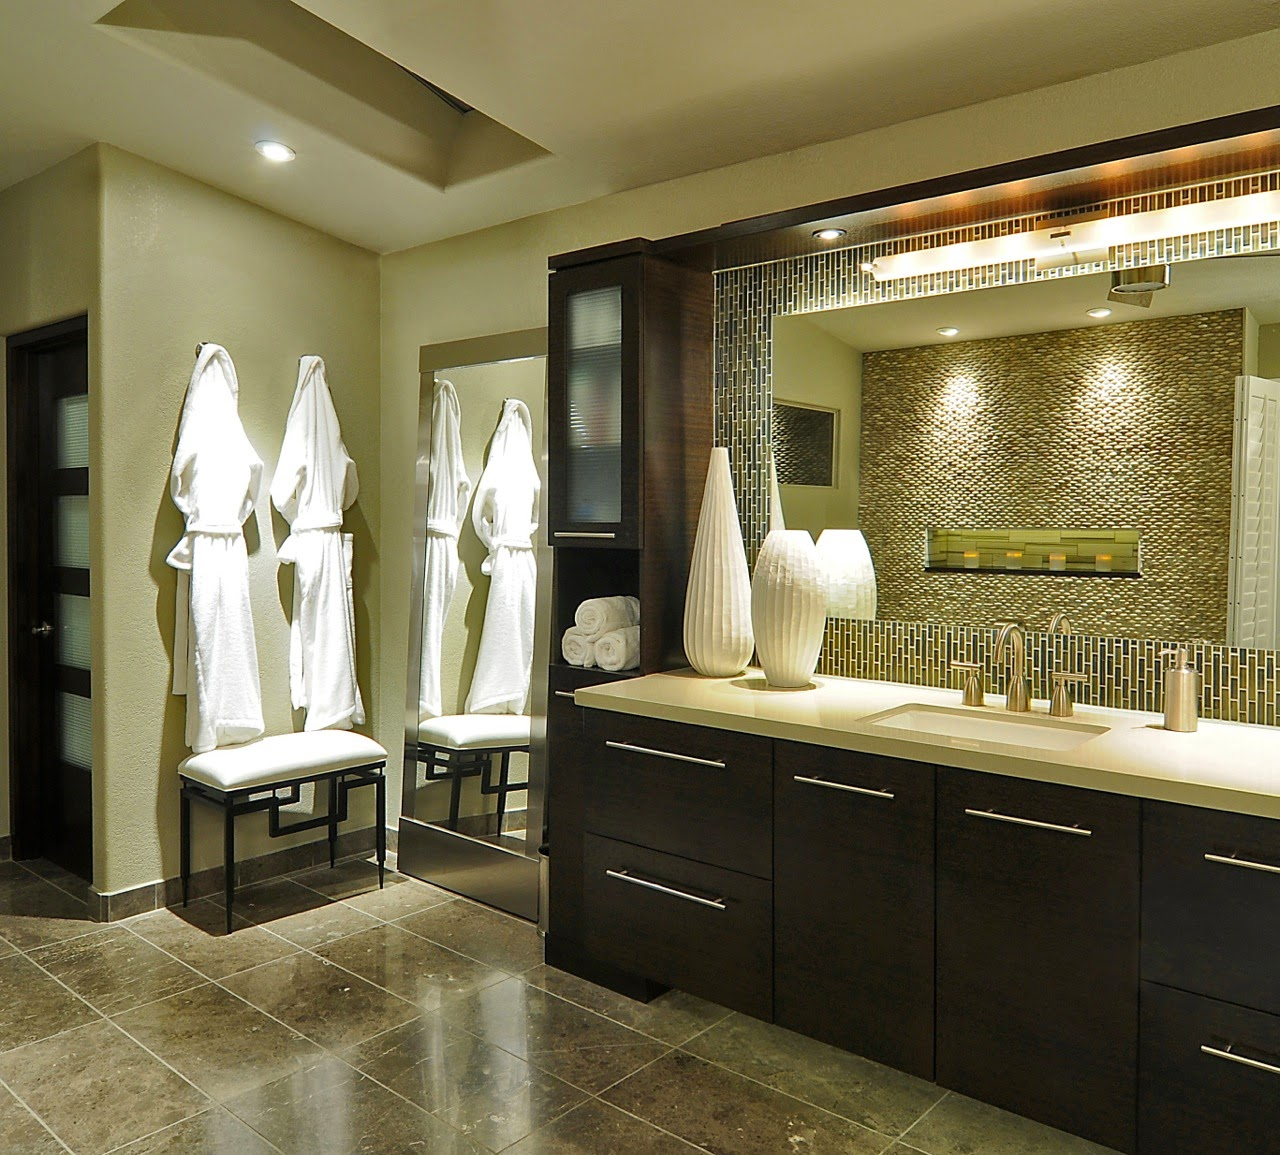 Award Winning Bathroom Designs 28 Images 2012 Coty Award Winning Bathrooms Traditional